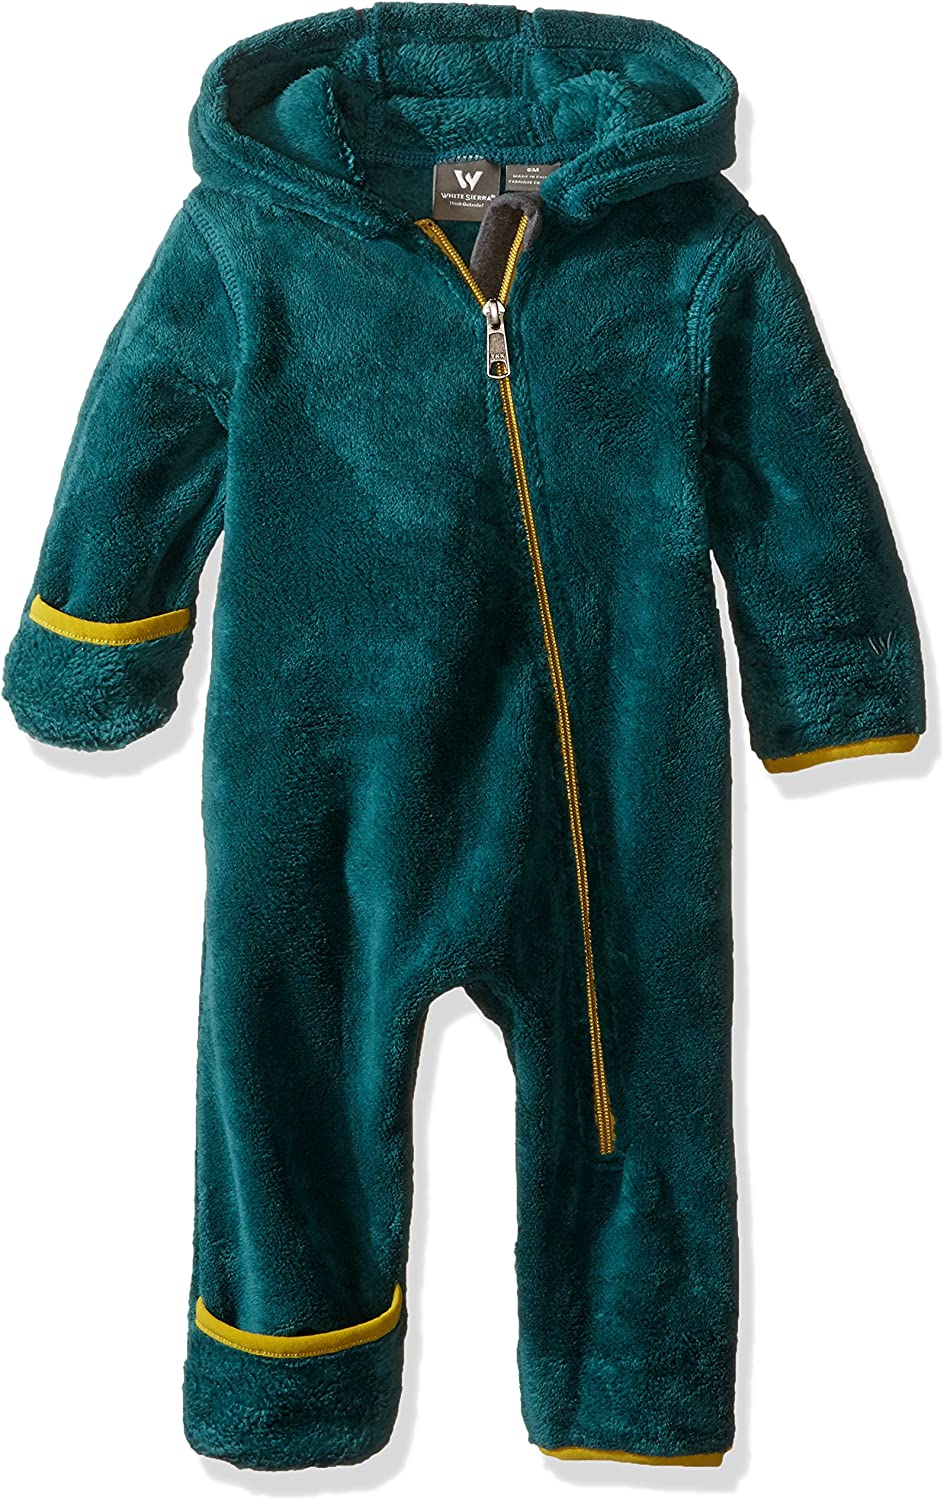 White Sierra Kids Cozy Fleece Onesie Jacket, Pacific, 12 months